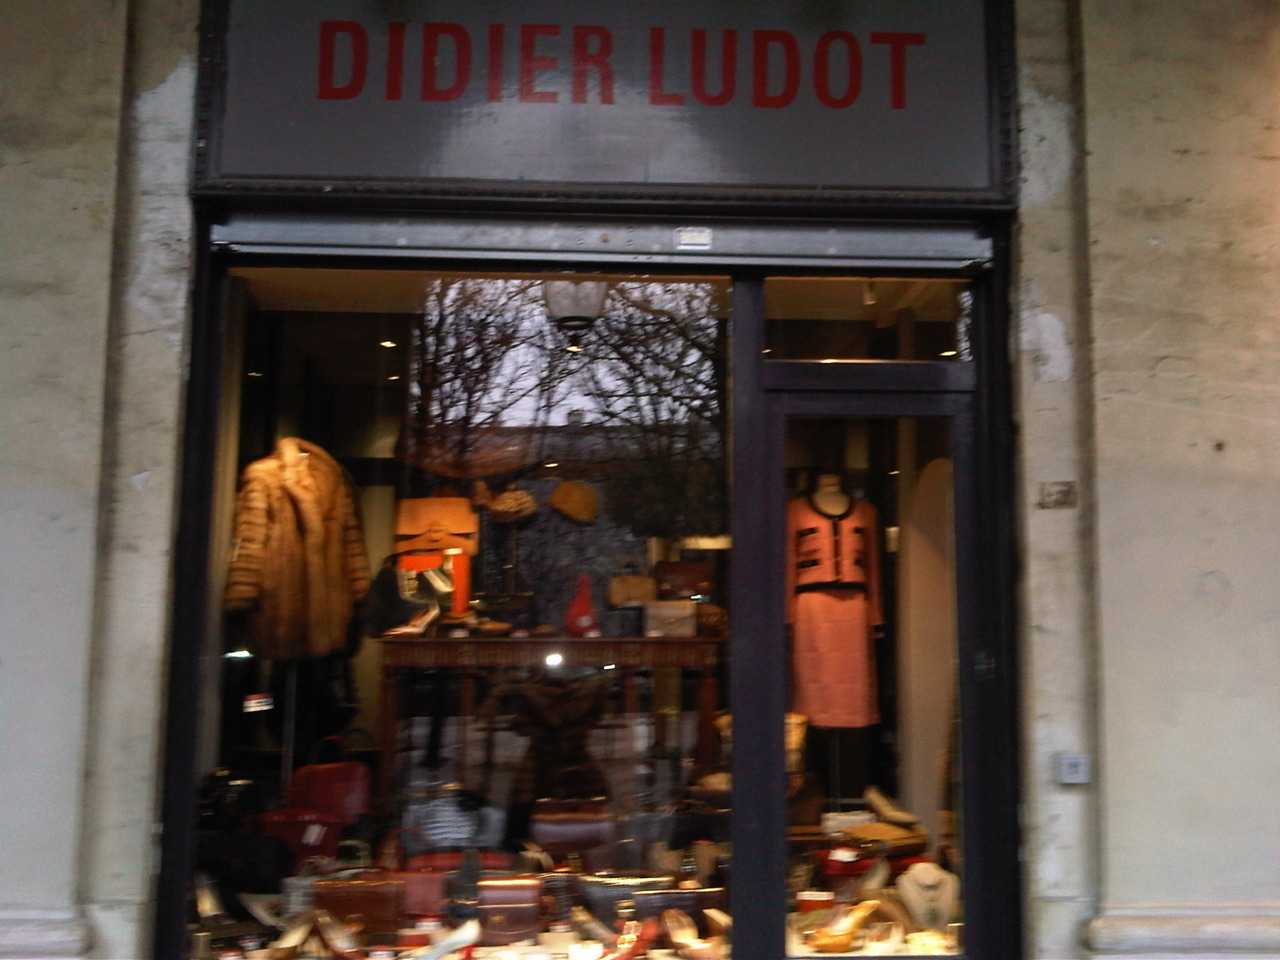 Didier Ludot in Paris Is every fashion admirer go to spot for names like Louis Vuitton, Hermes,Chanel, Alexander McQueen…etc